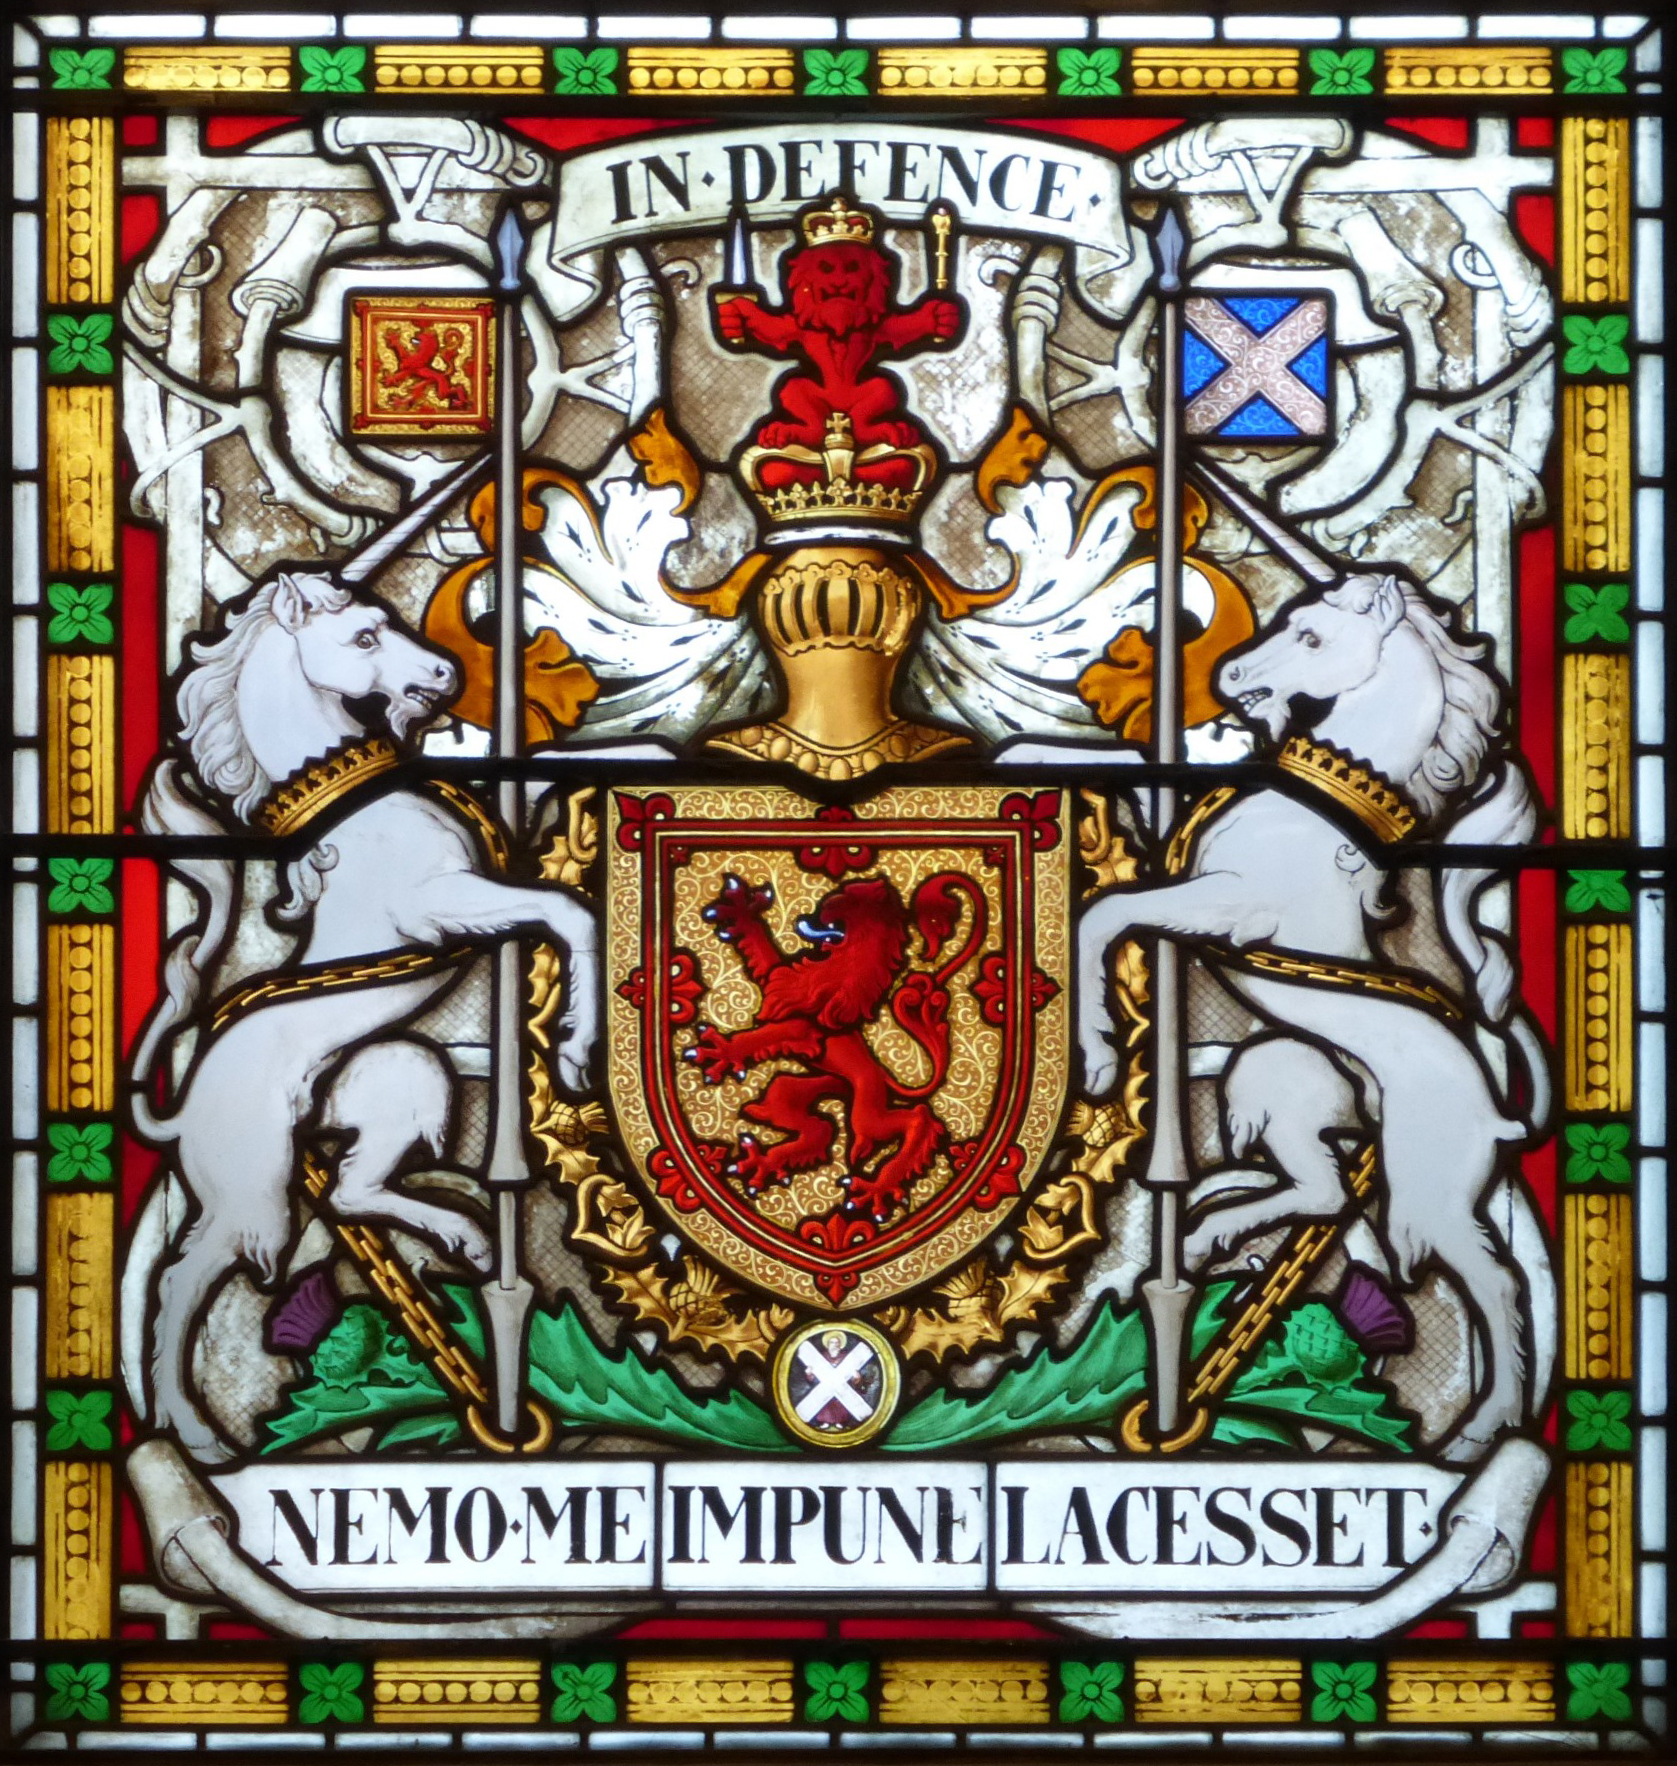 The Royal Arms of Scotland, Parliament Hall.